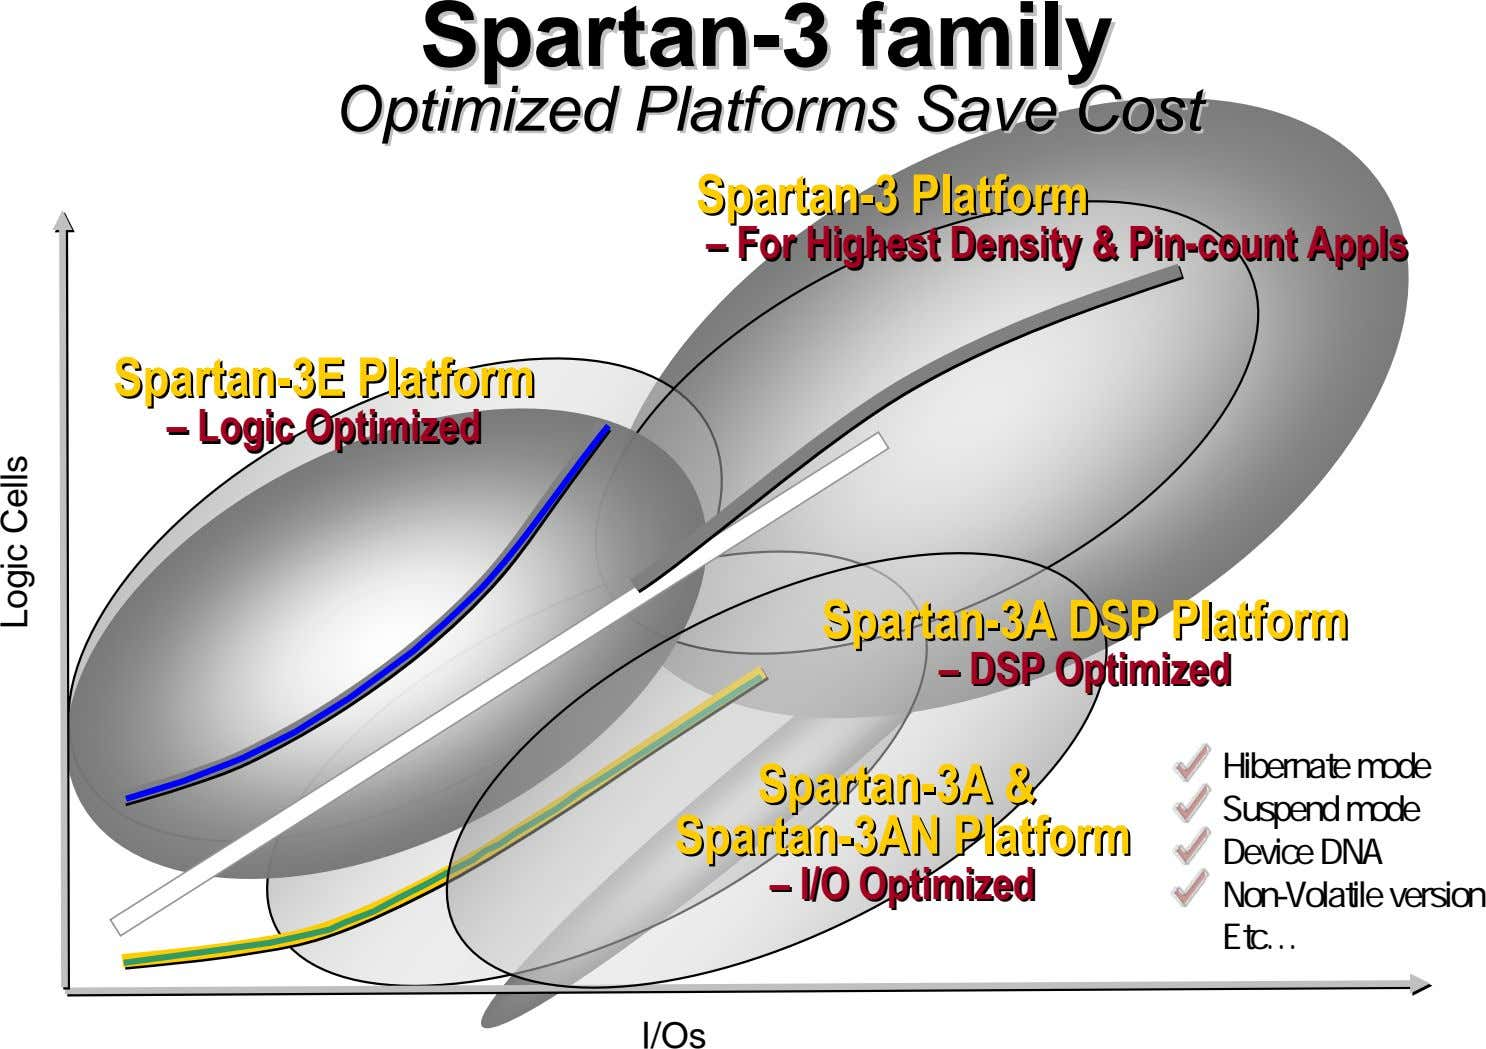 SpartanSpartan--33 familyfamily OptimizedOptimized PlatformsPlatforms SaveSave CostCost Spartan-3 Spartan-3 Platform